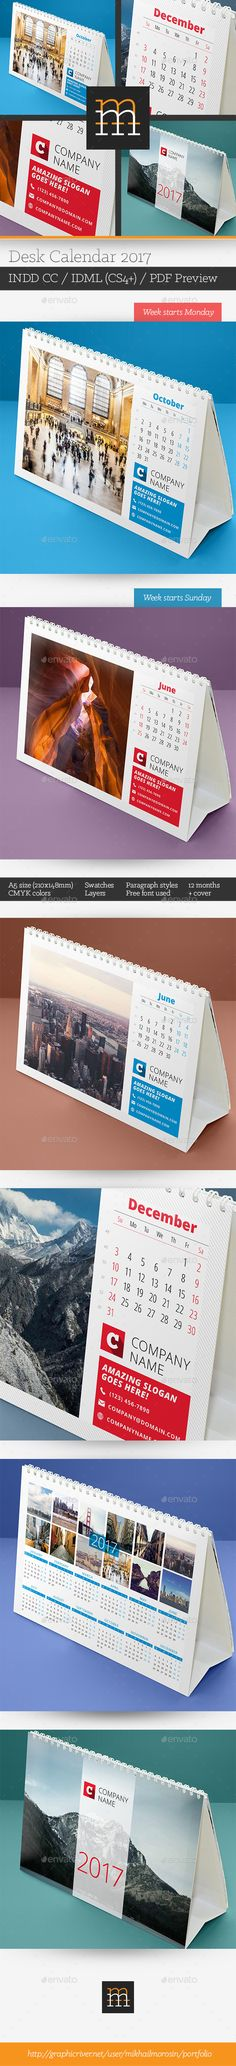 Indesign Calendar Template Wall Calendar Template Indesign Indd